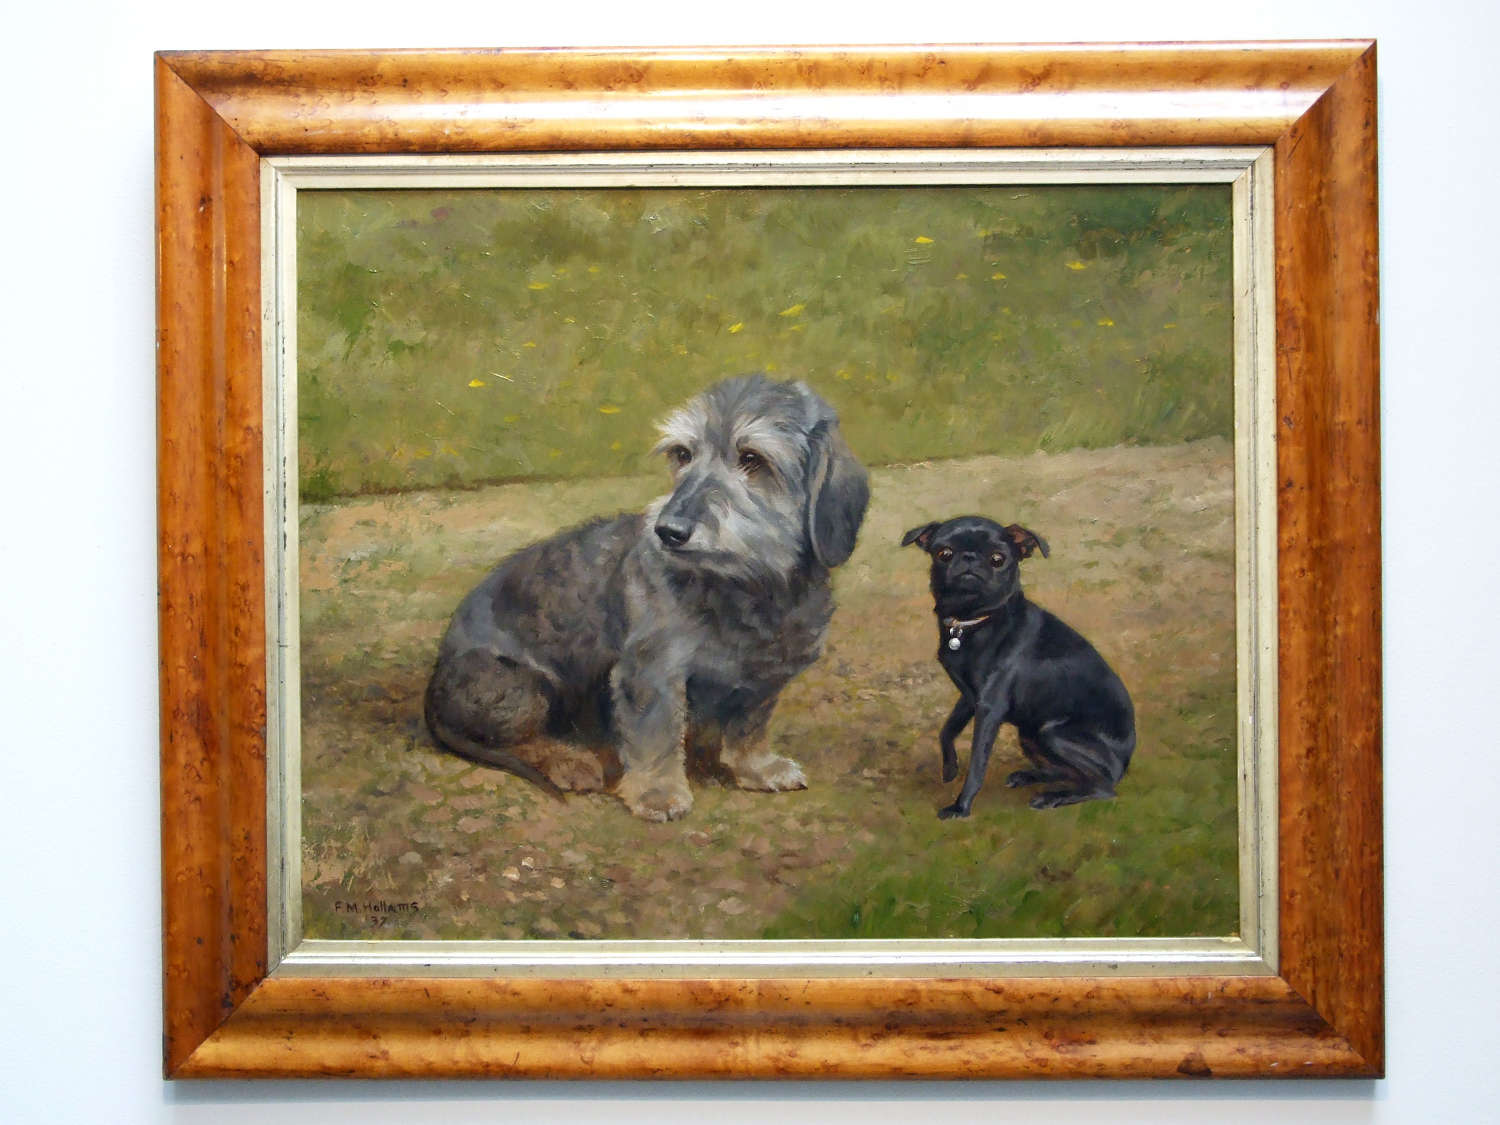 Charming oil portrait of two dogs by Frances Mabel Hollams